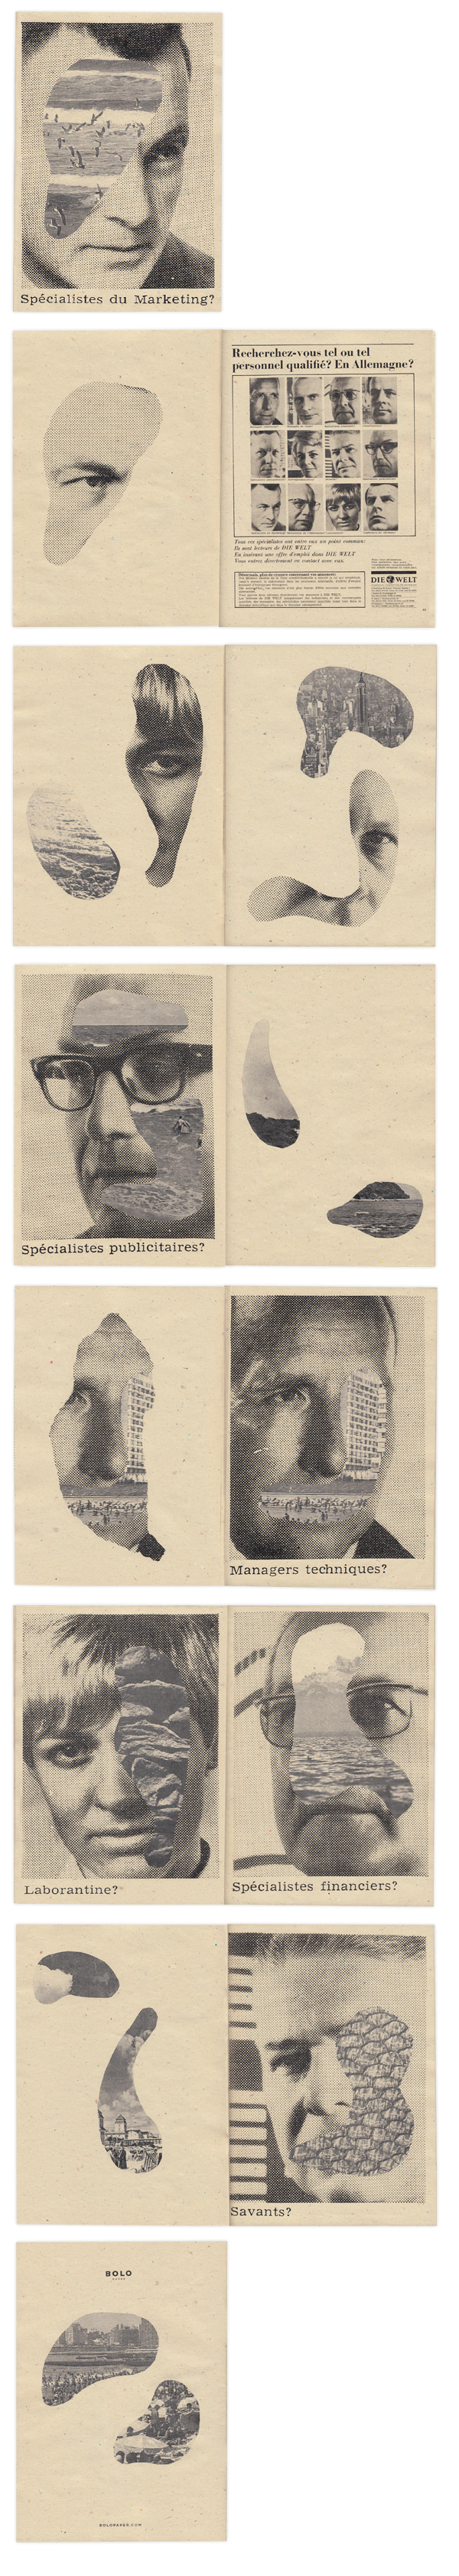 """Spècialistes du Marketing?  A4 format, beije paper 160 gr, 20 pages, b/w. A serie af analog collages made out of a """"Die Welt"""" old french adv mixed with some panoramic vintage photo shots."""